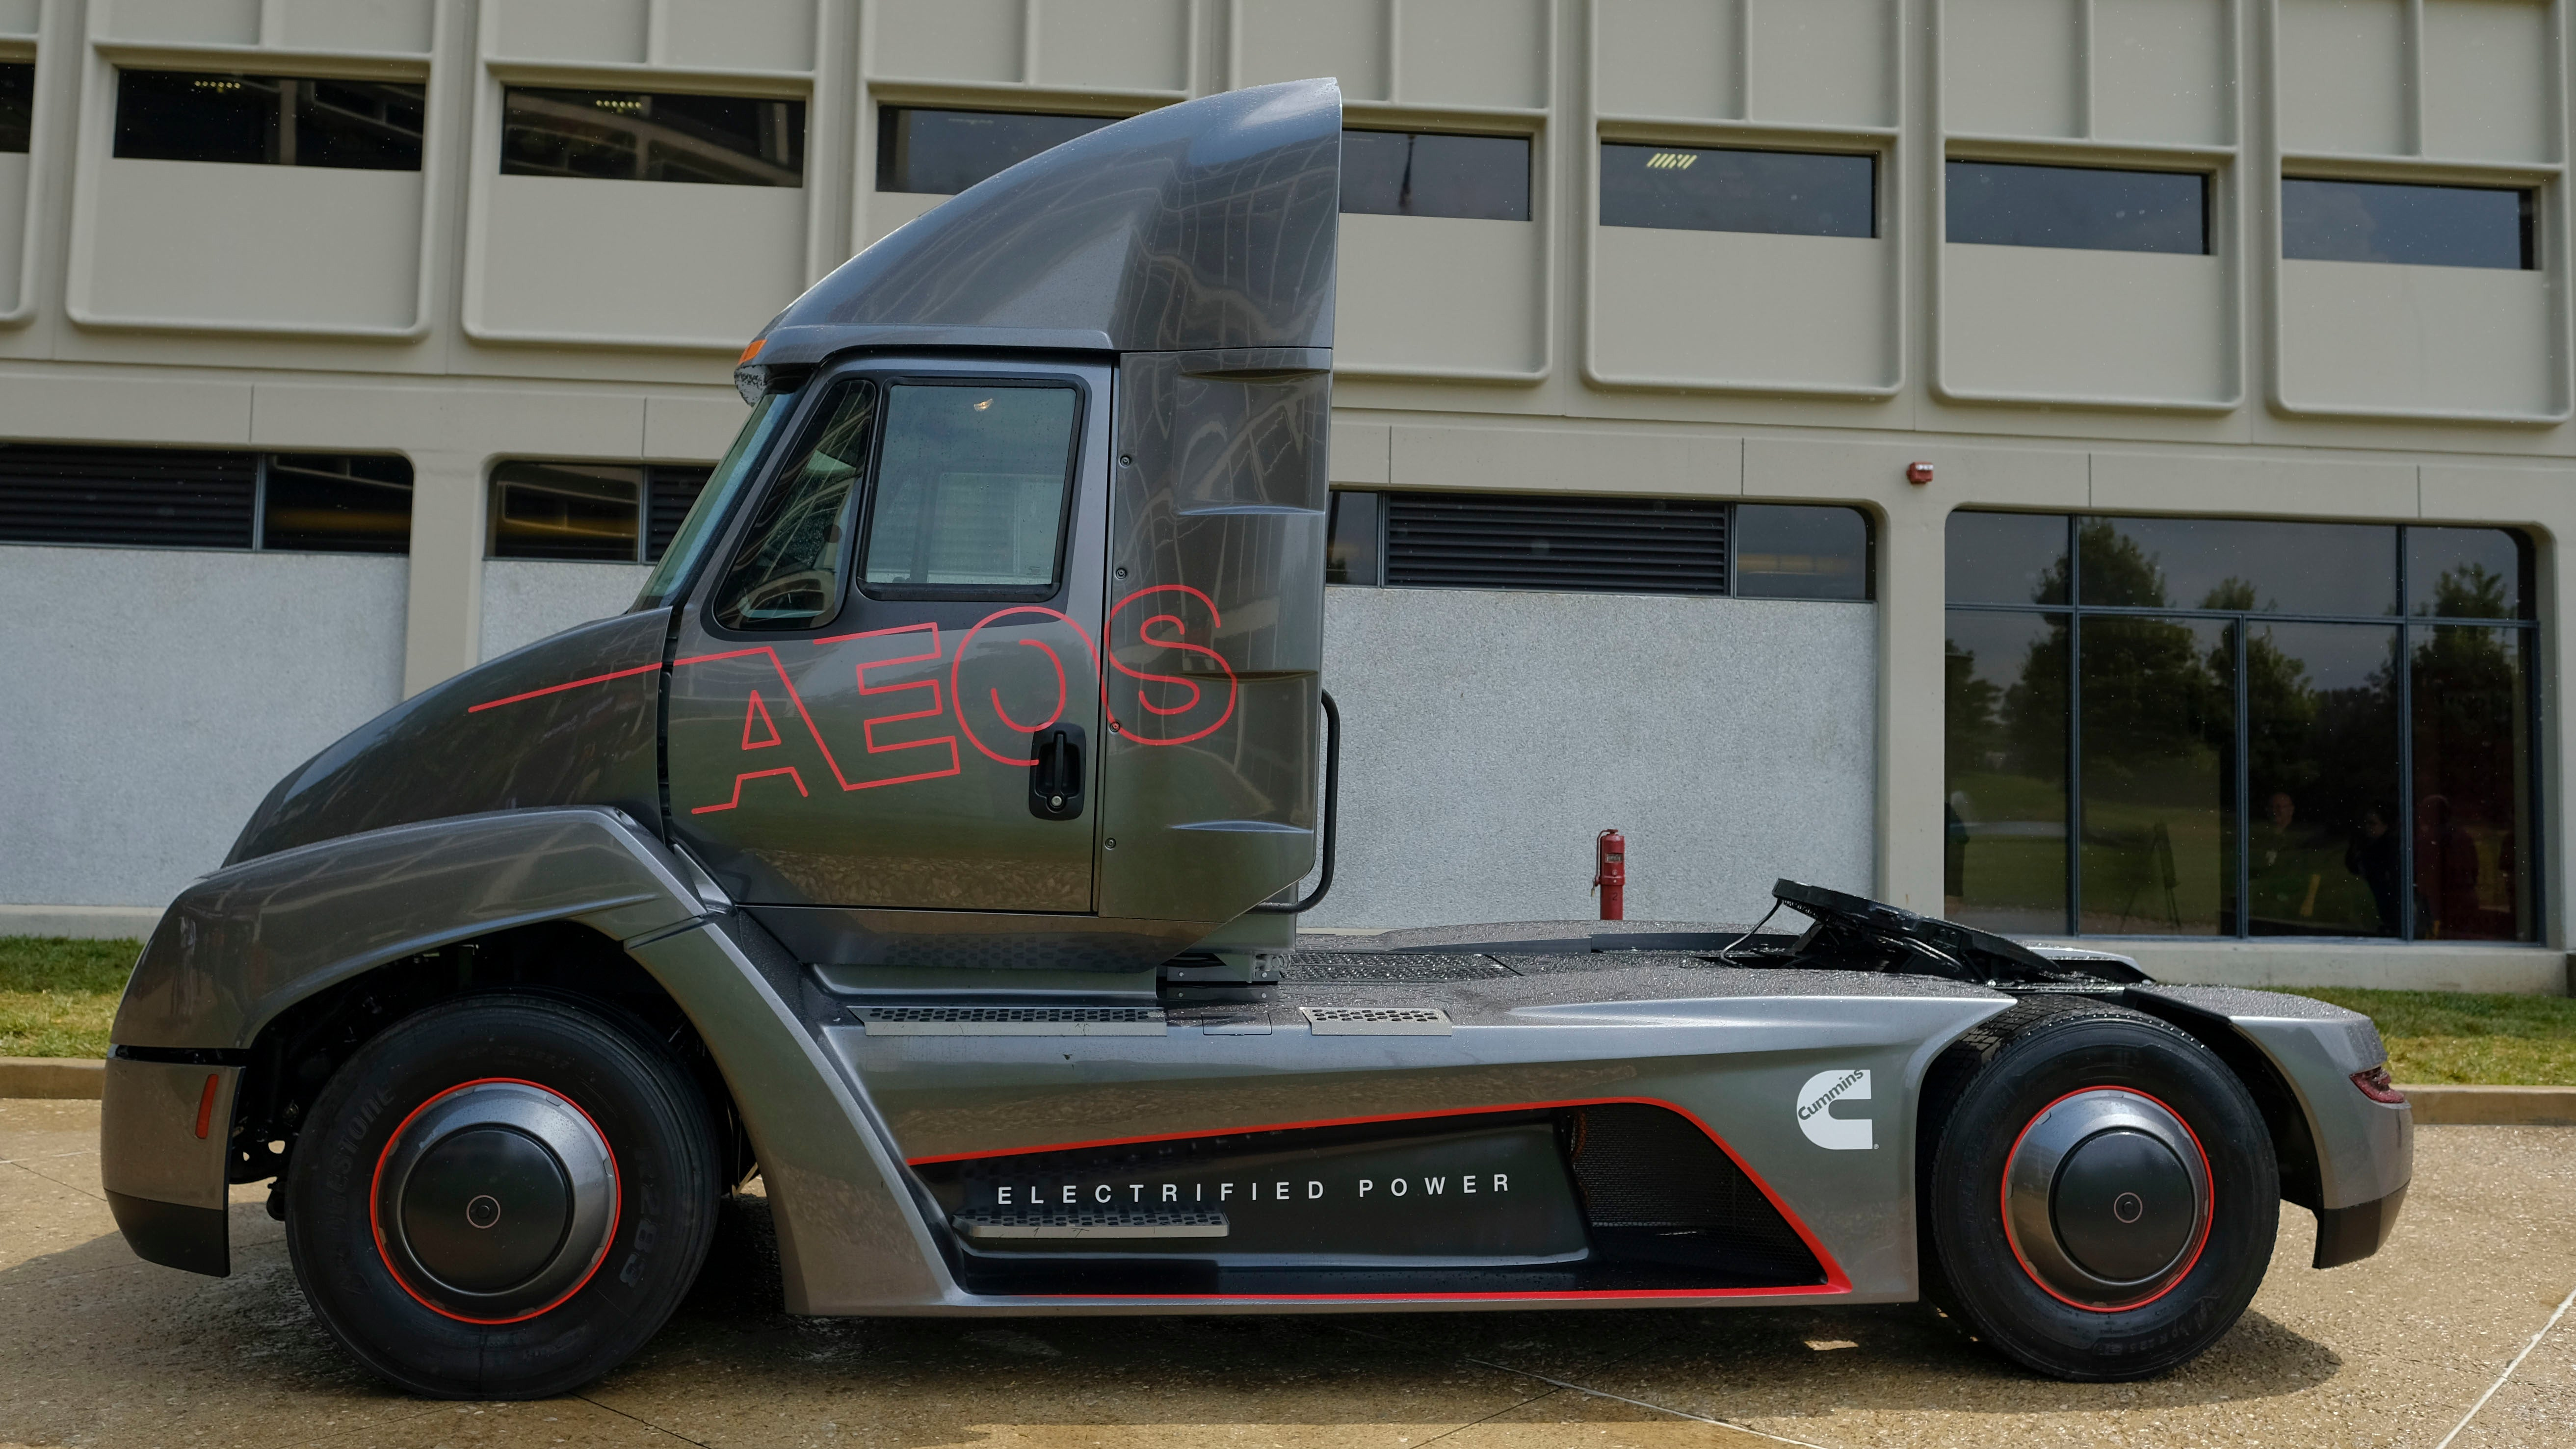 Cummins Beats Tesla To The Punch And Introduces An All-Electric Heavy-Duty Truck